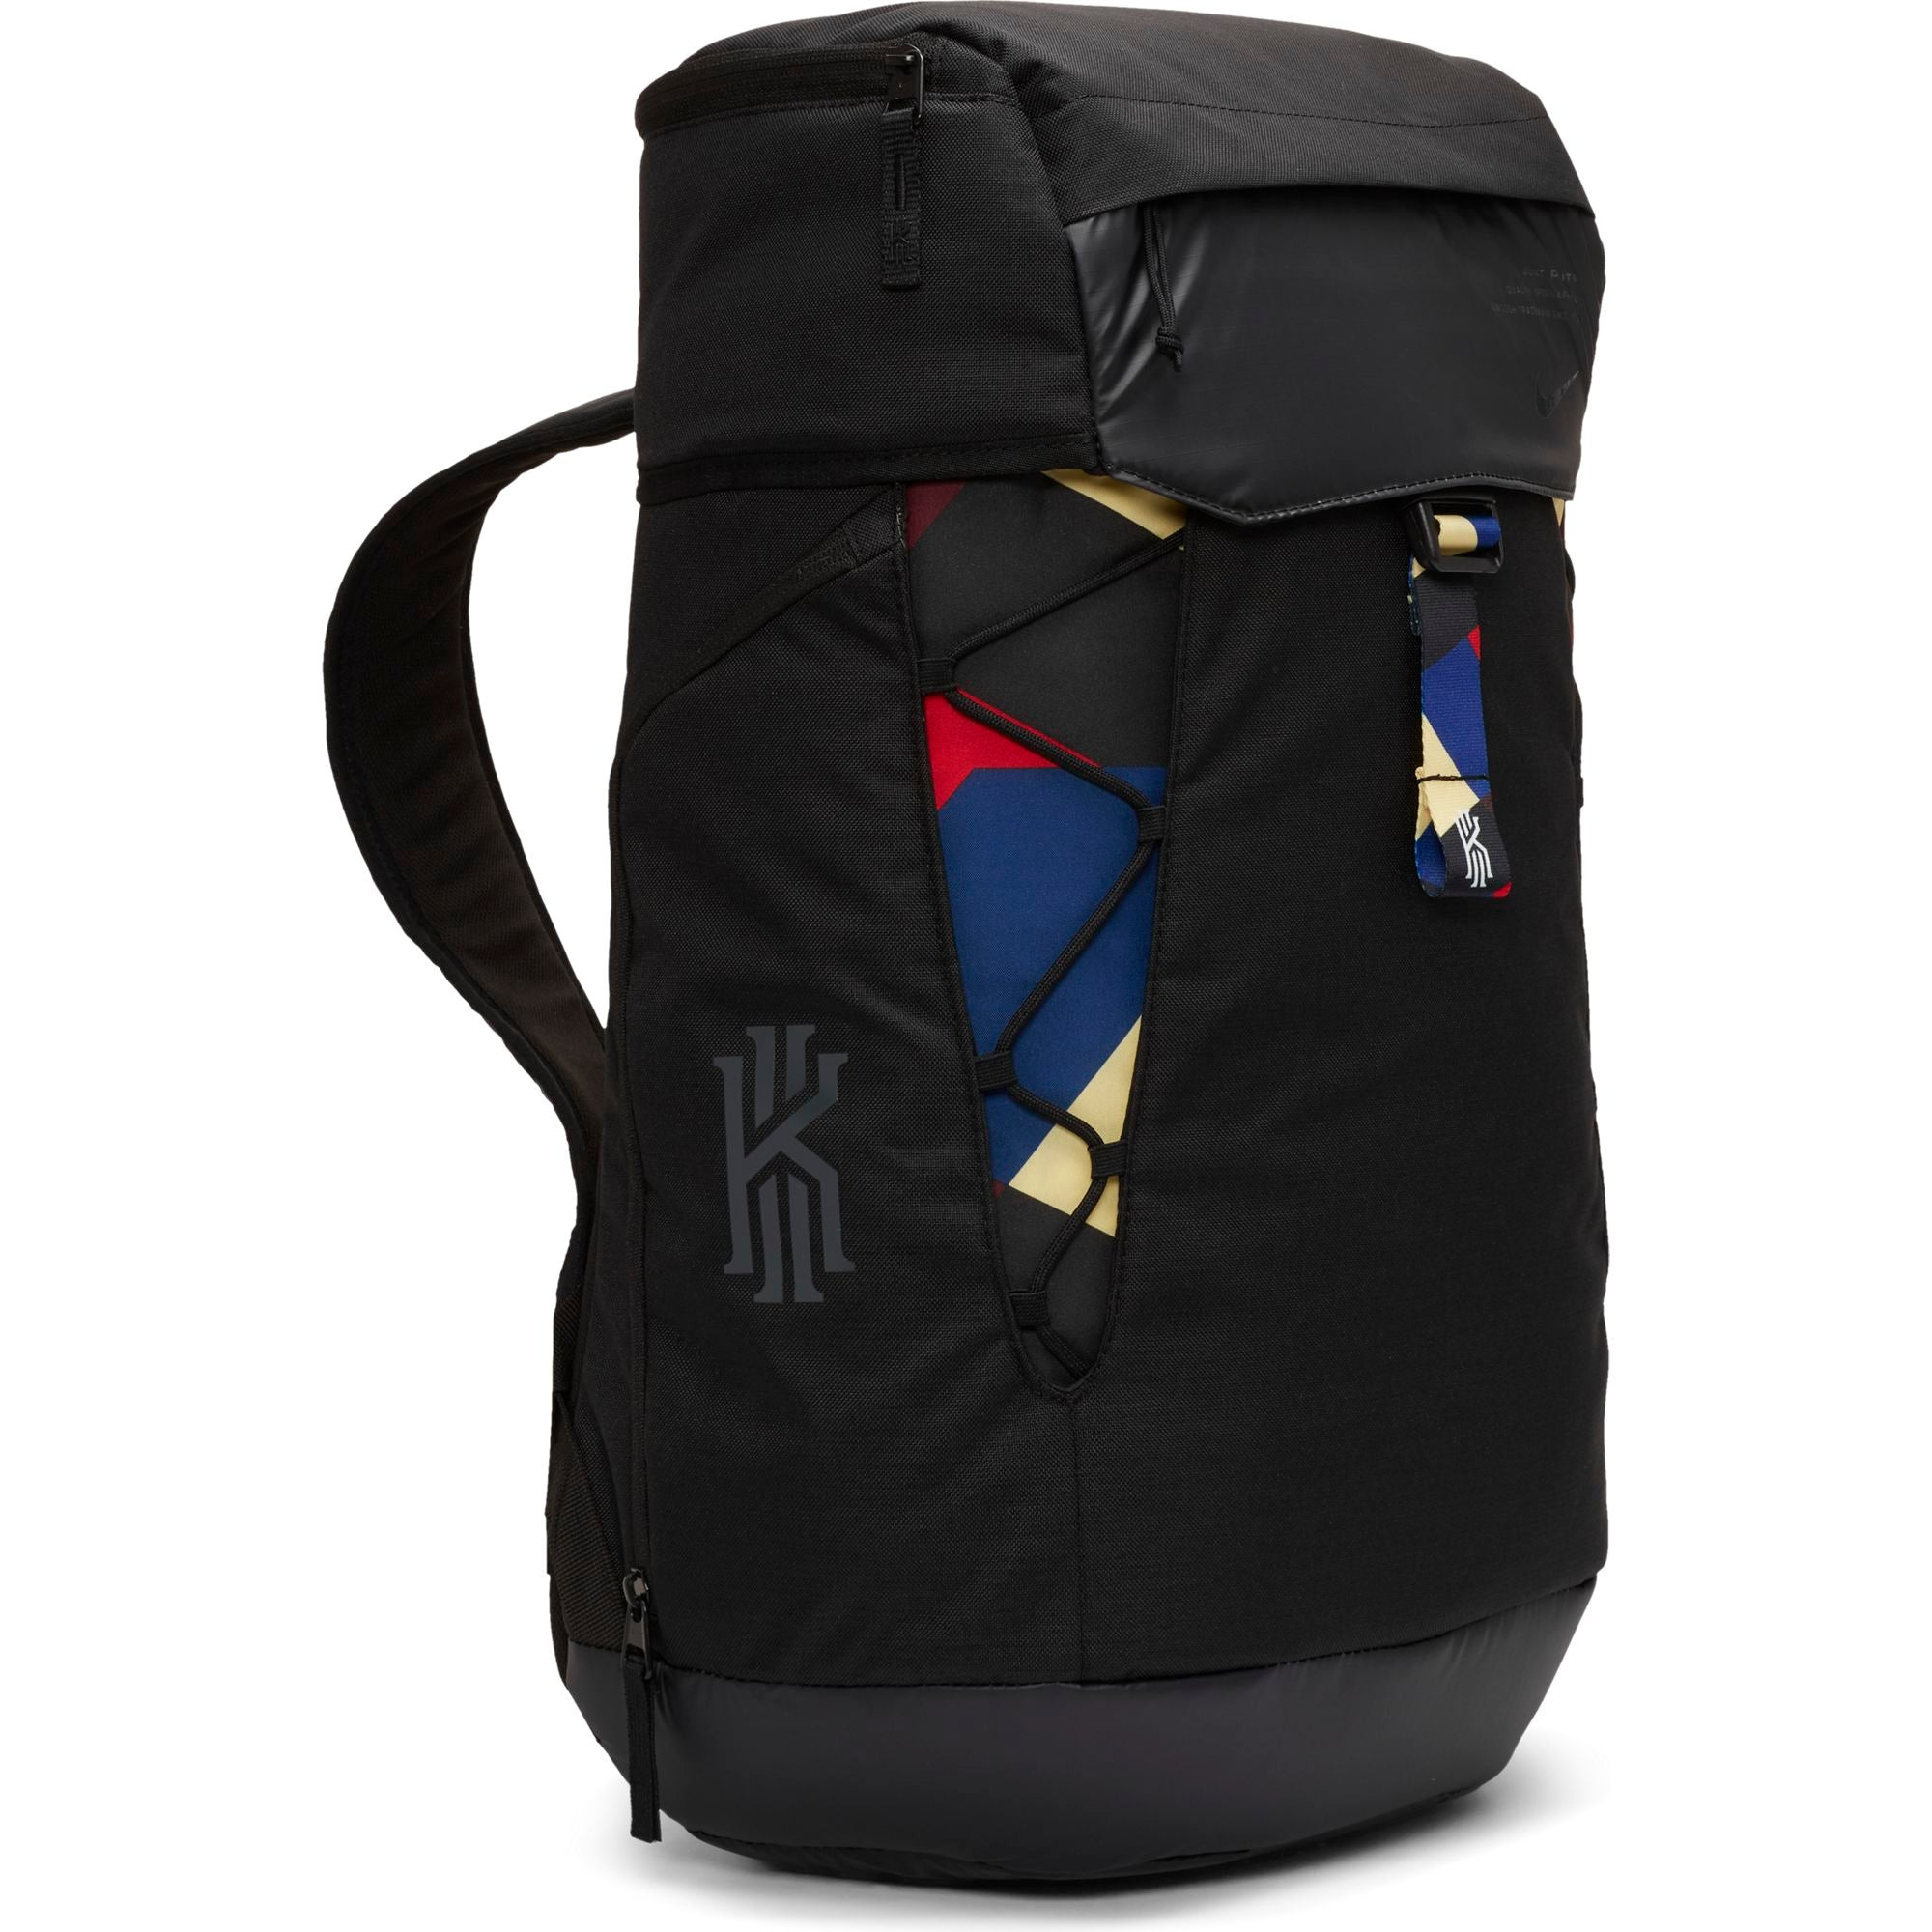 Nike Kyrie Backpack - Black/Dark Smoke Grey